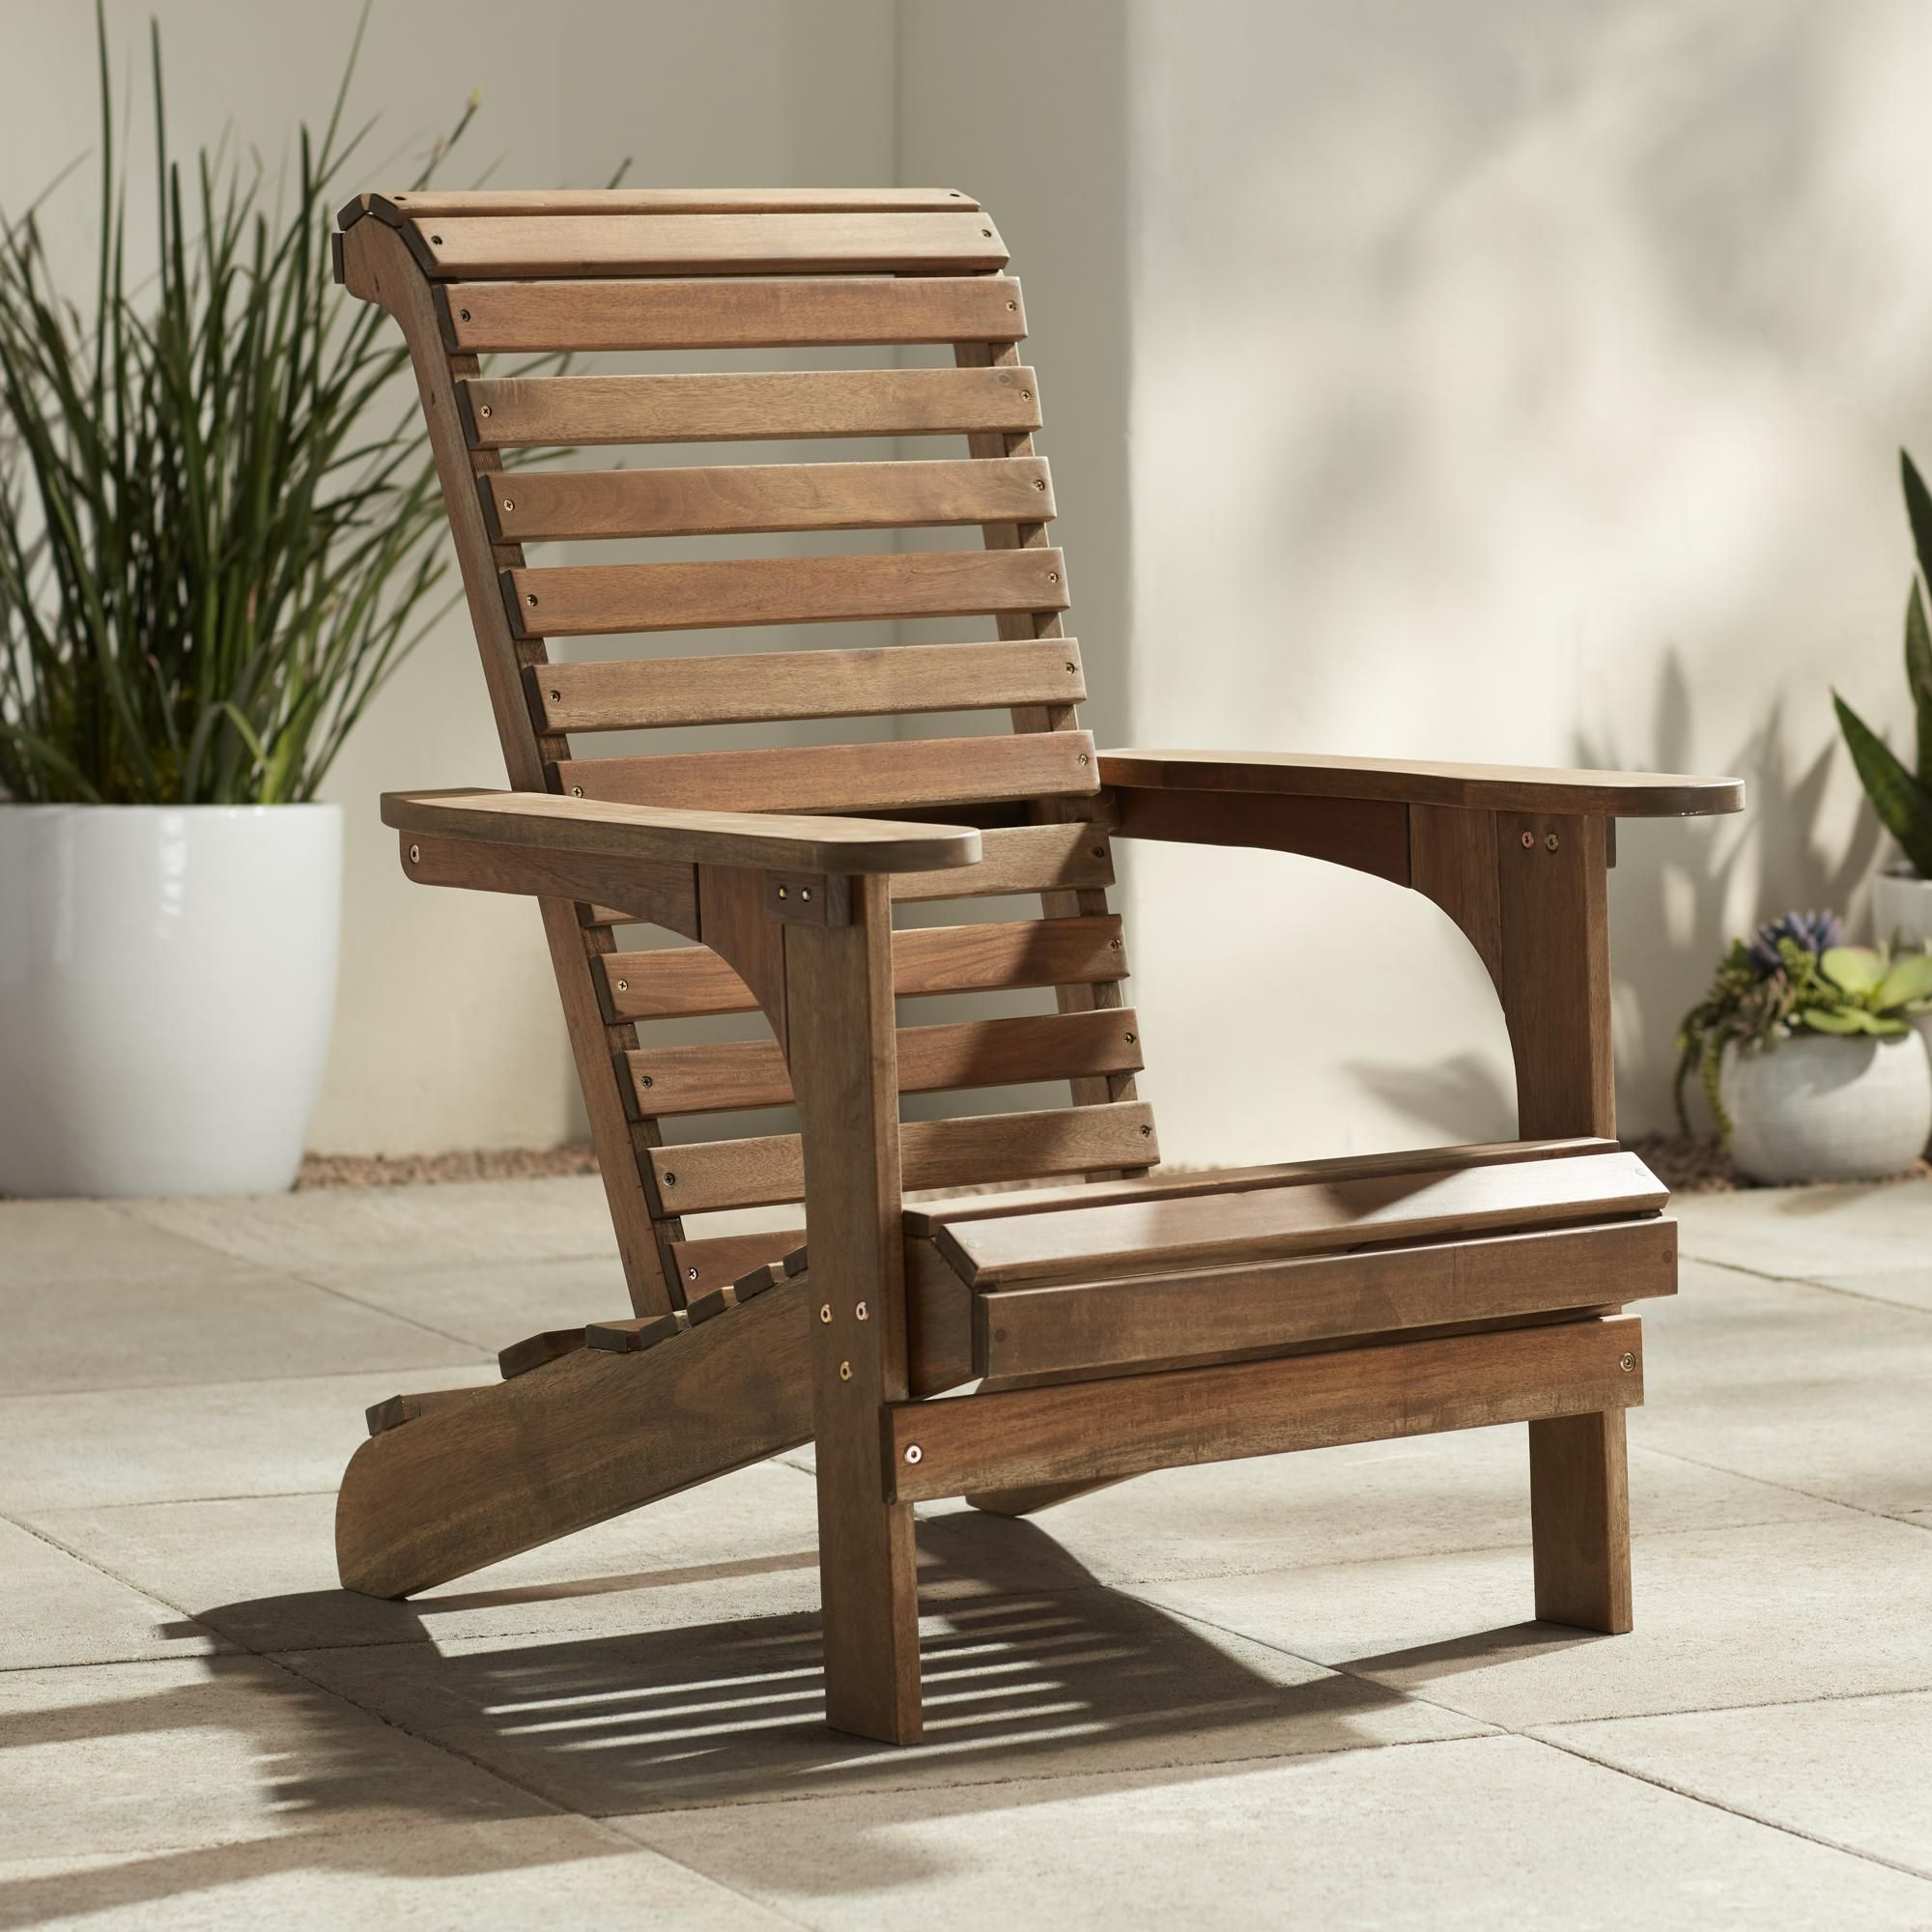 Kenneth Acacia Natural Wood Adirondack Chair Wood Adirondack